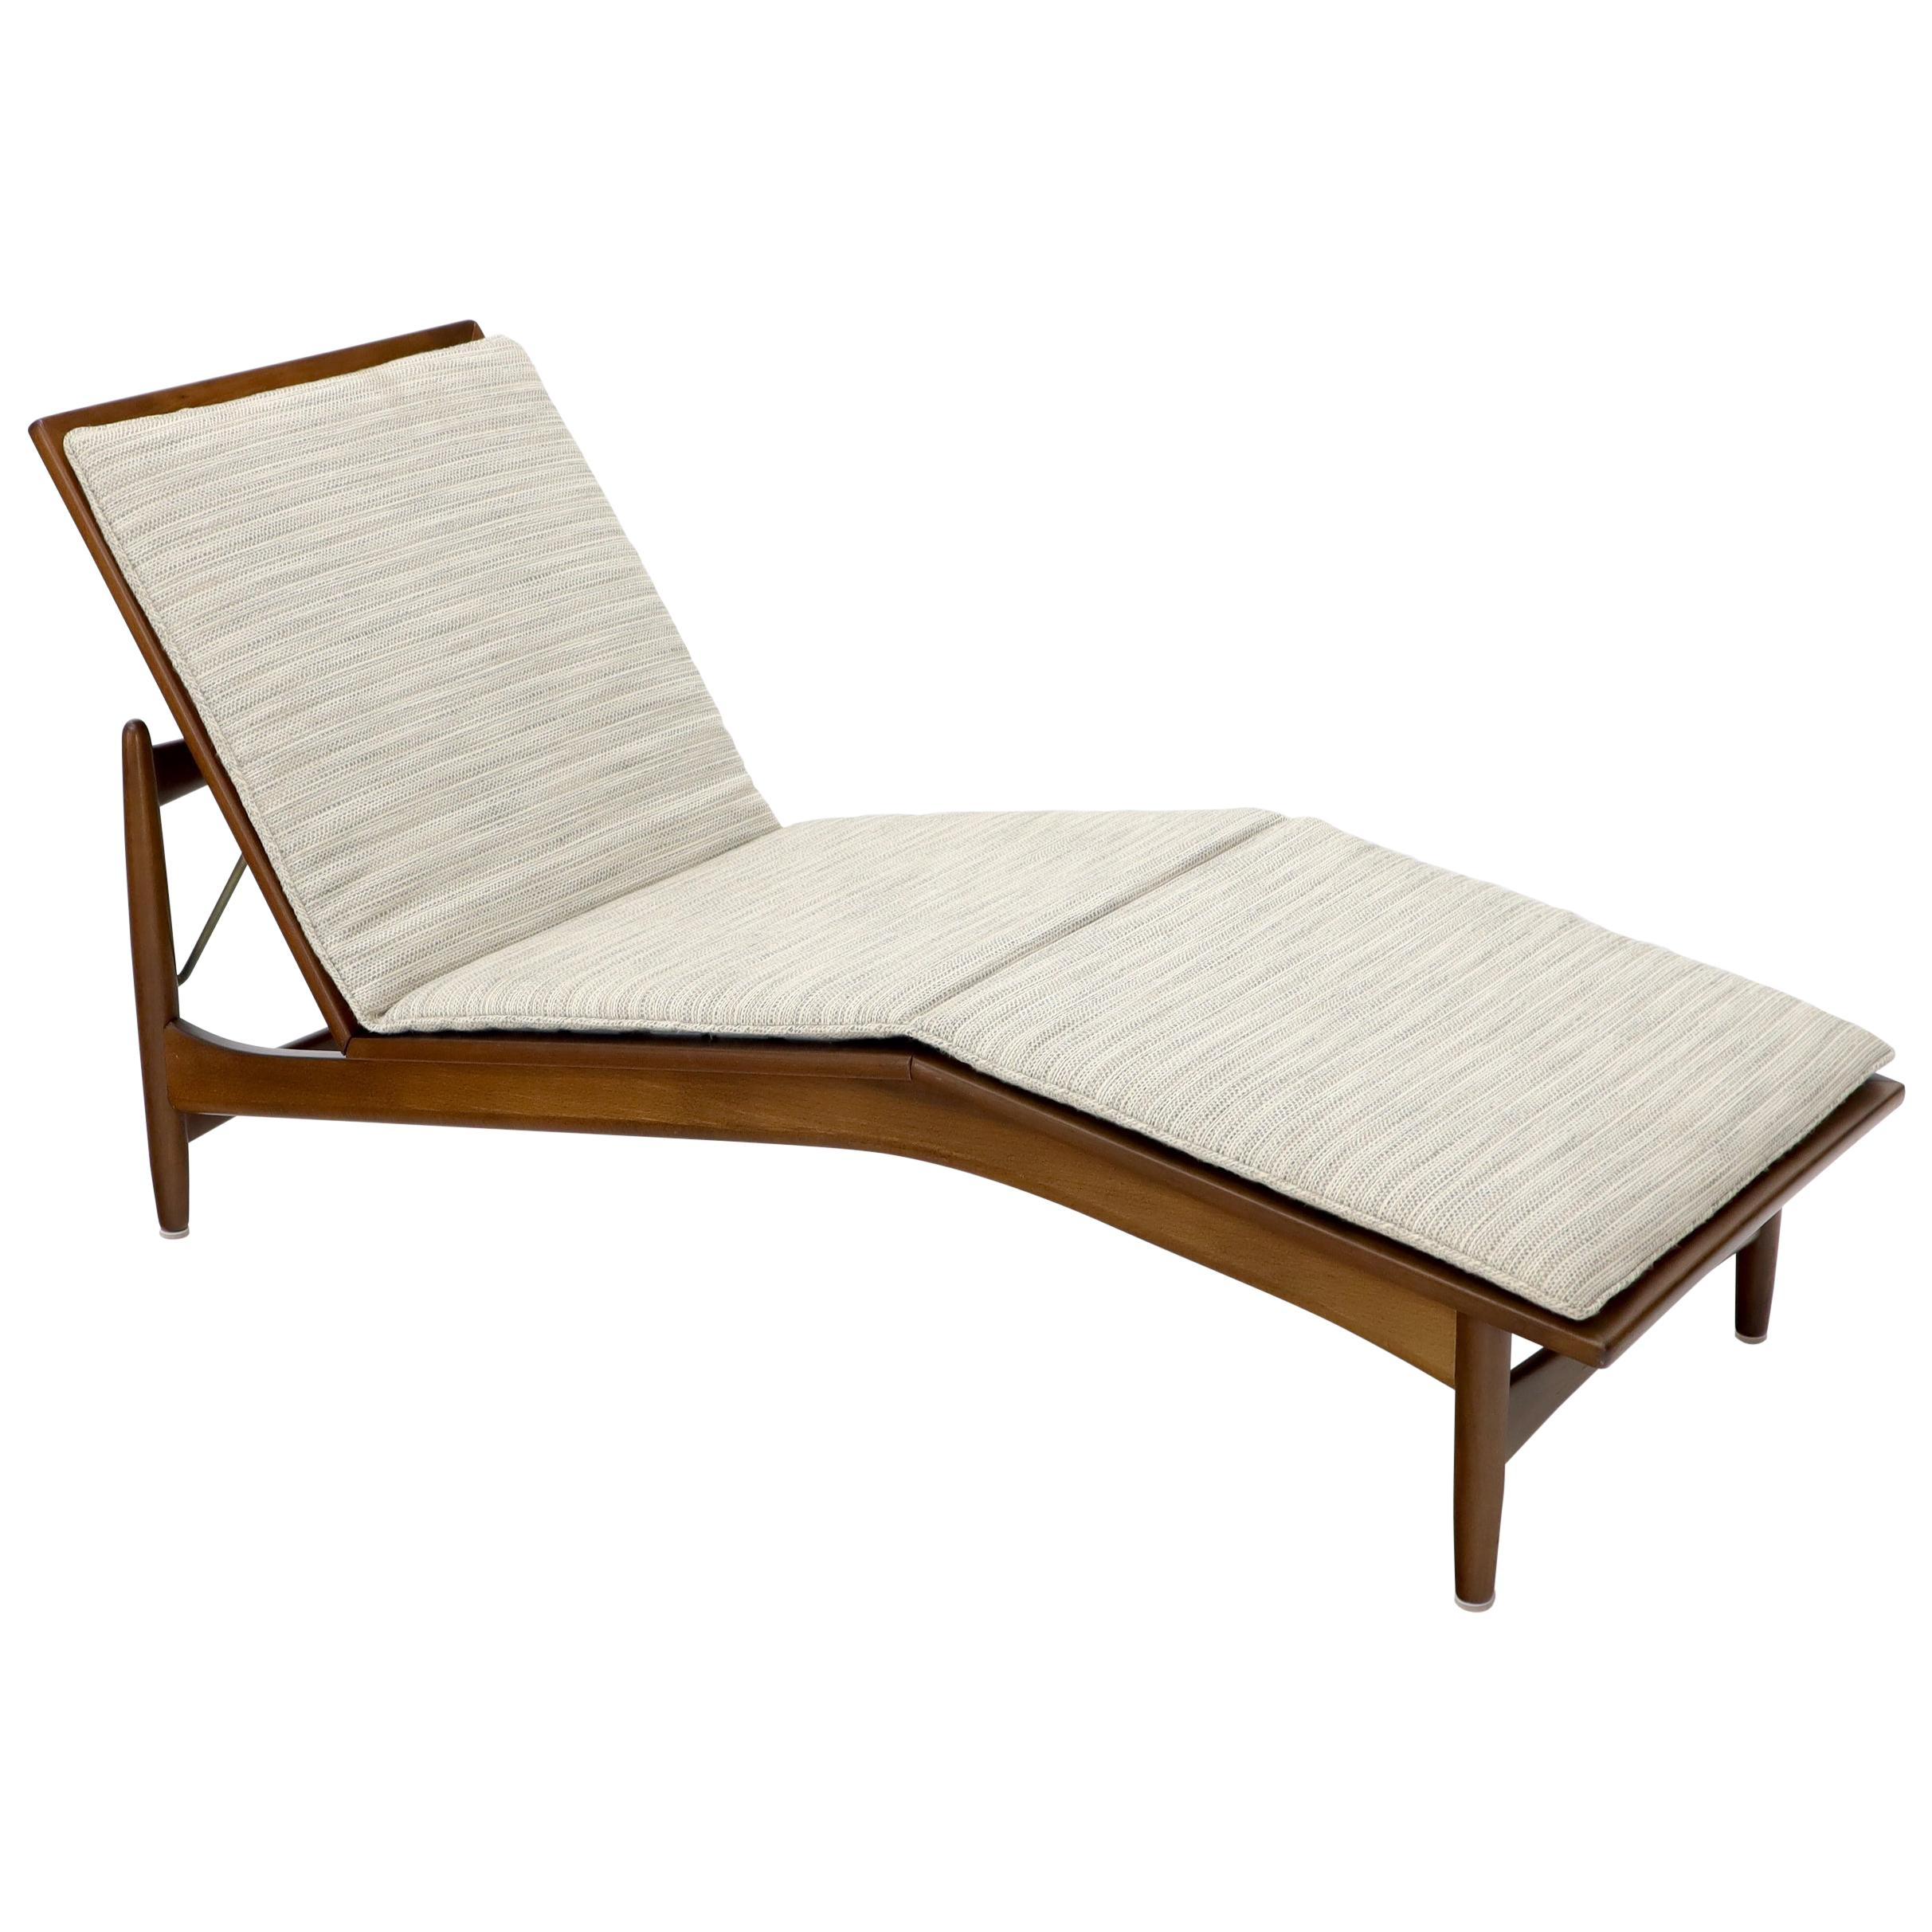 Adjustable Danish Mid-Century Modern Chaise Lounge by Selig